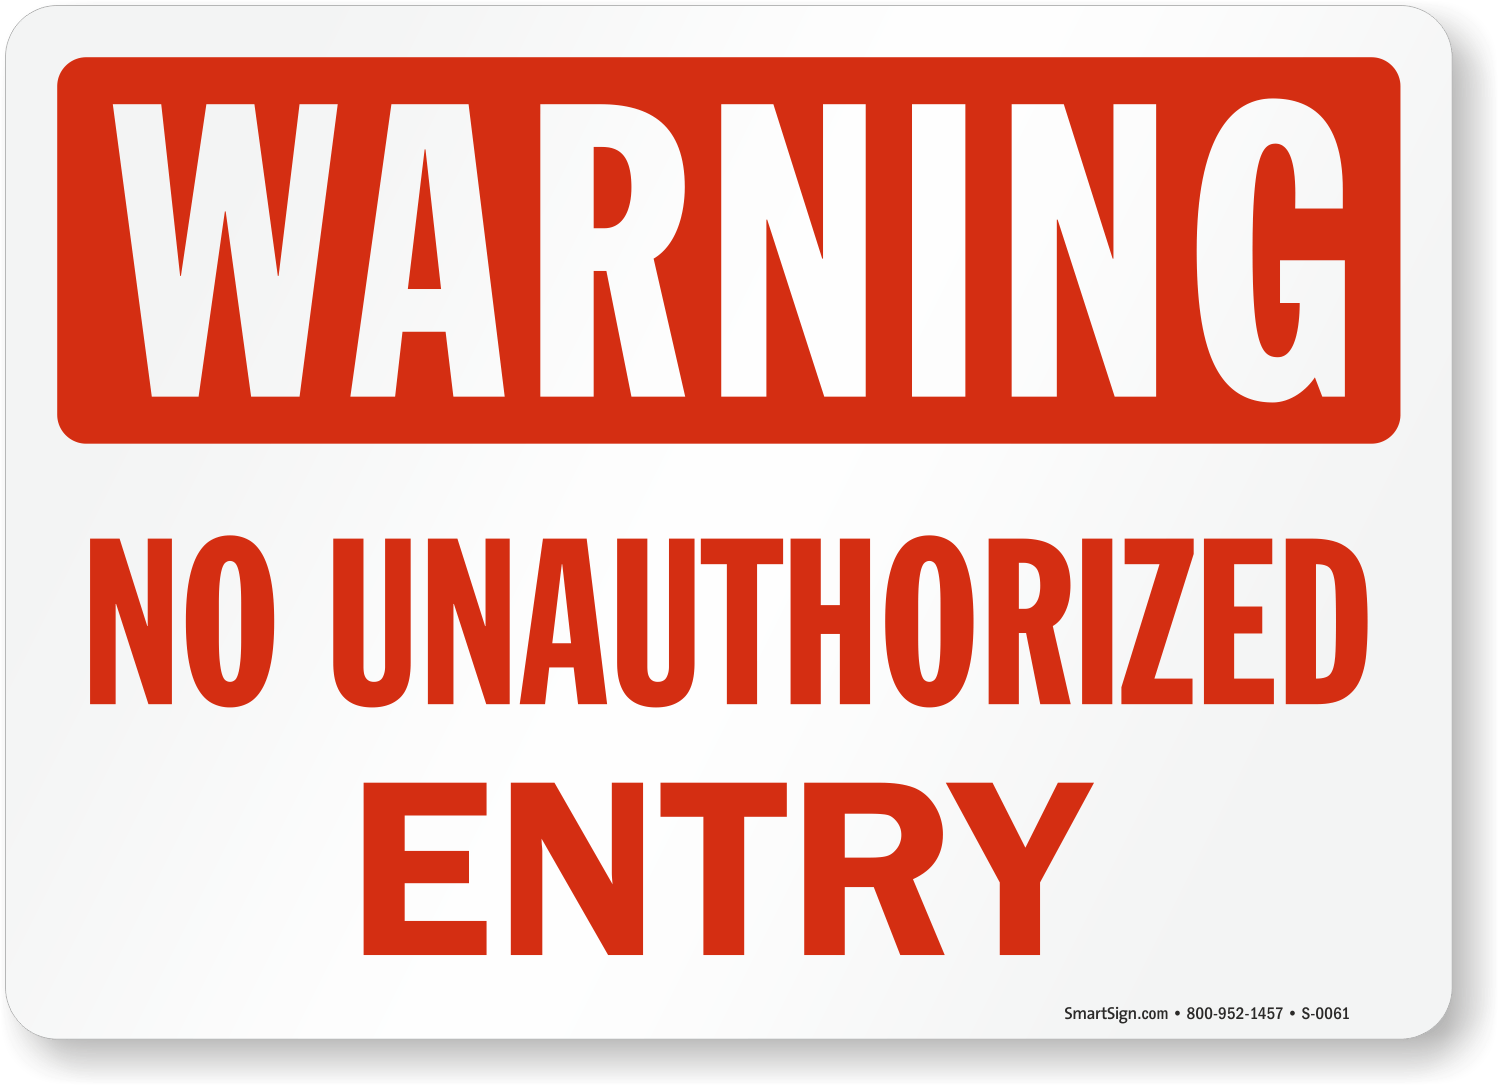 No Unauthorized Entry Sign, SKU: S-0061